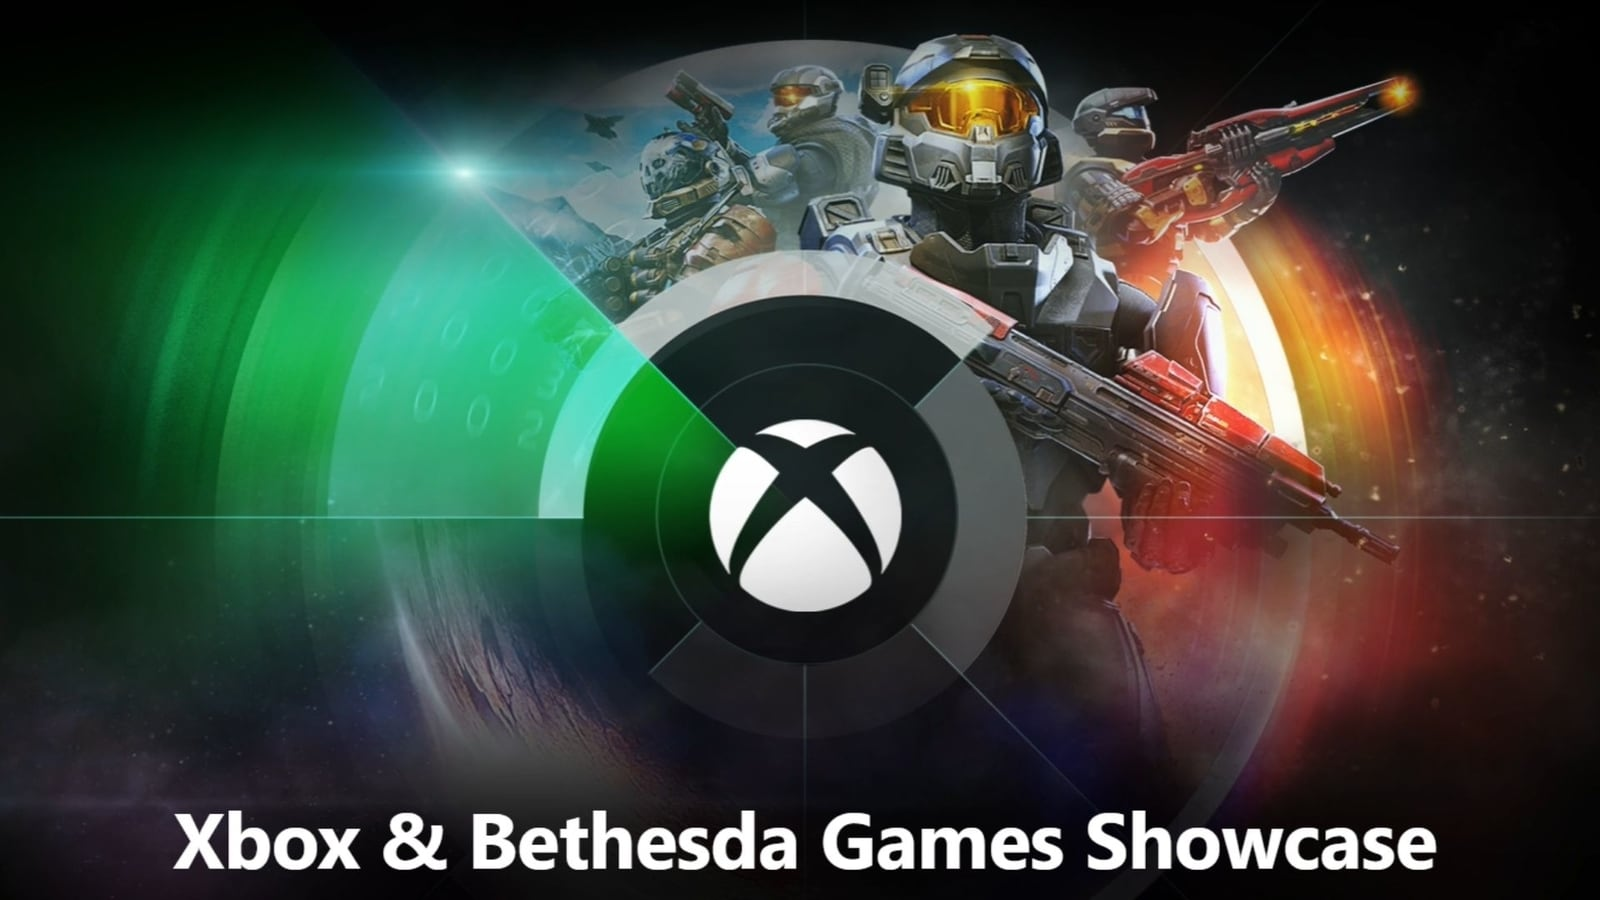 E3 2021 – Xbox and Bethesda Showcases: From Starfield to Battlefield 2042 to Halo Infinite, here are the main game announcements